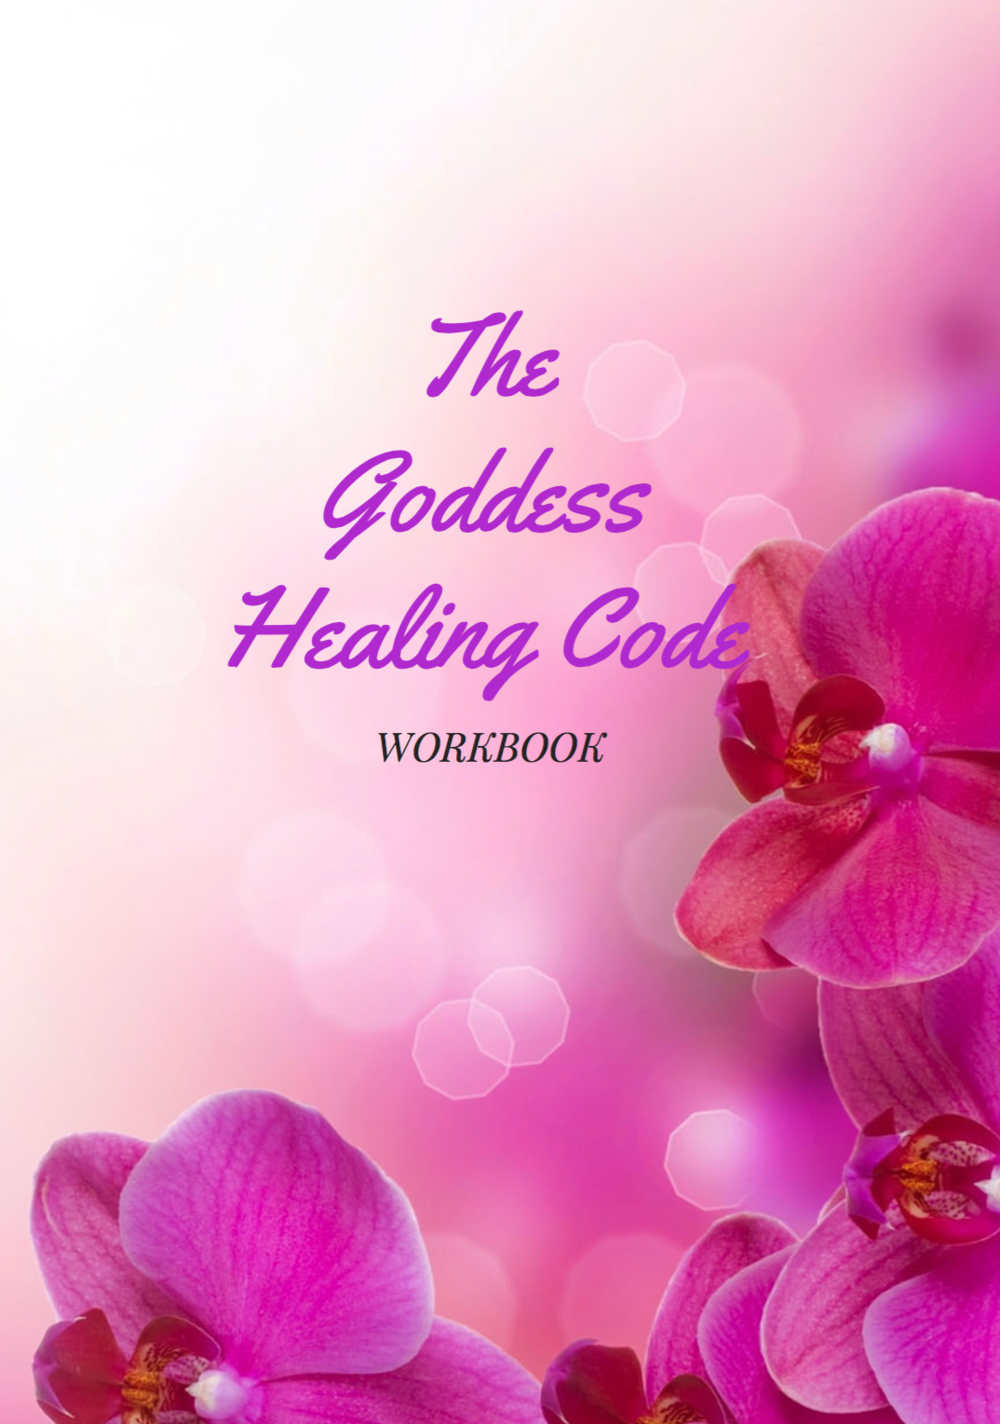 This 38 page beautiful color E-Book is packed full of nourishing tools, techniques, recipes and practices for Women's Hormonal & Sexual Health!